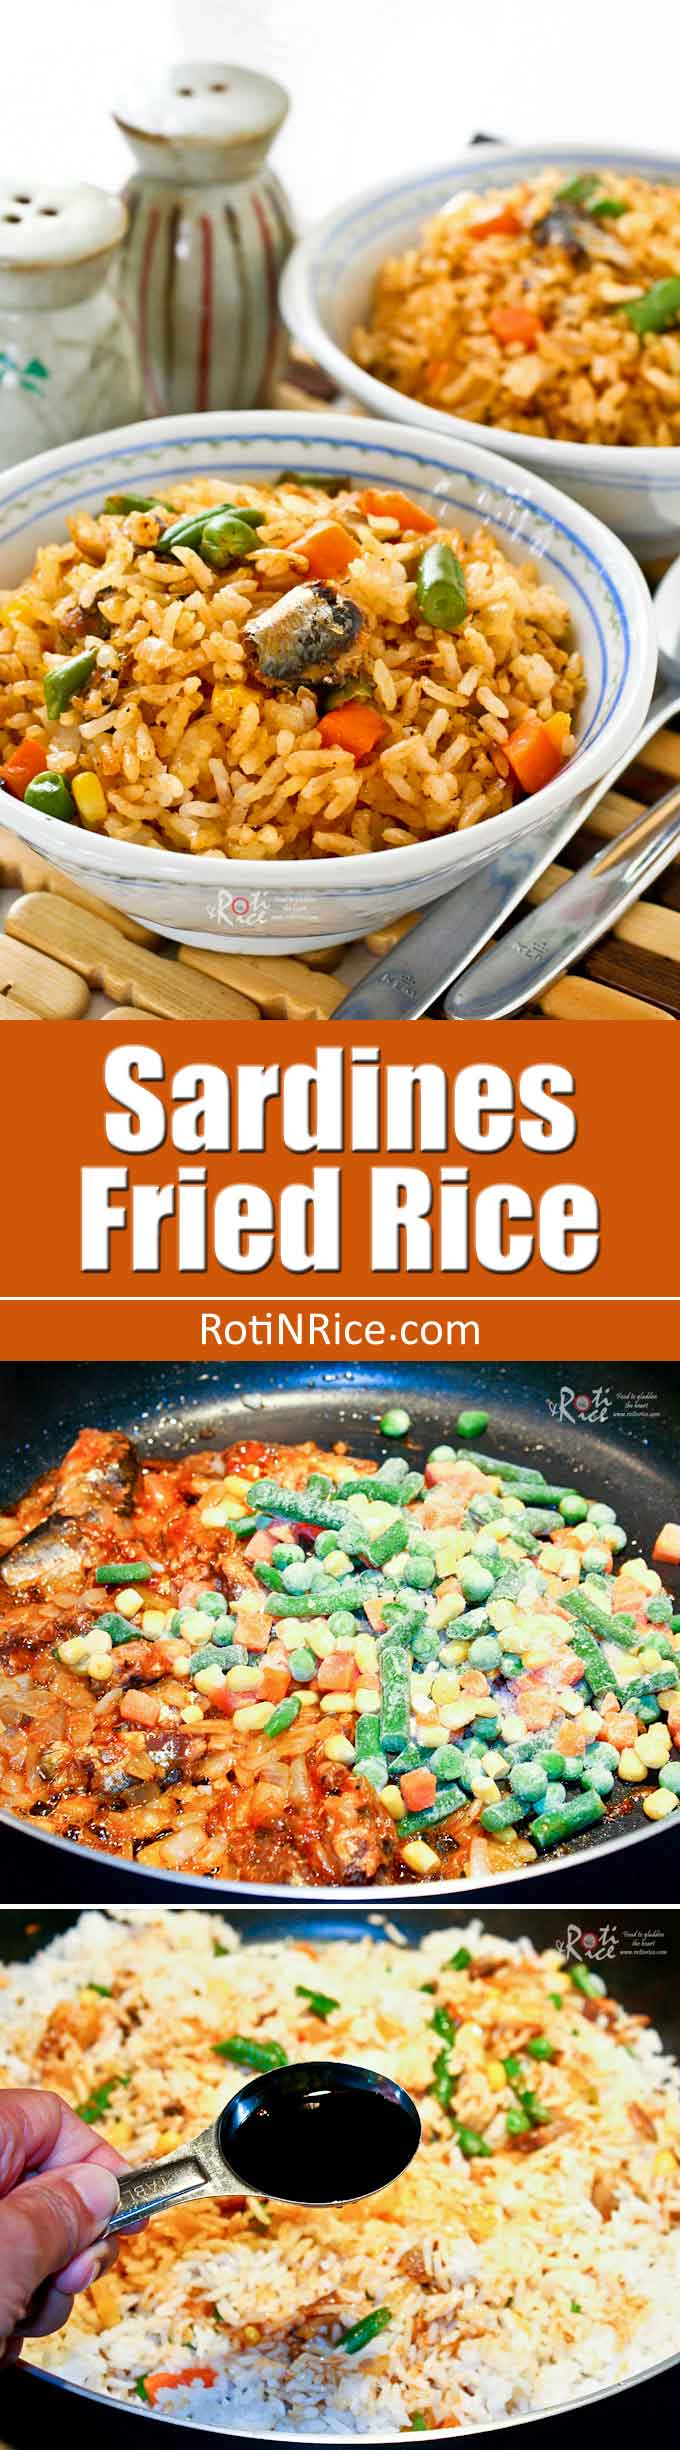 Prepare this tasty Sardines Fried Rice using convenient canned sardines and frozen mixed vegetables. Big on taste with minimum prep work. | RotiNRice.com